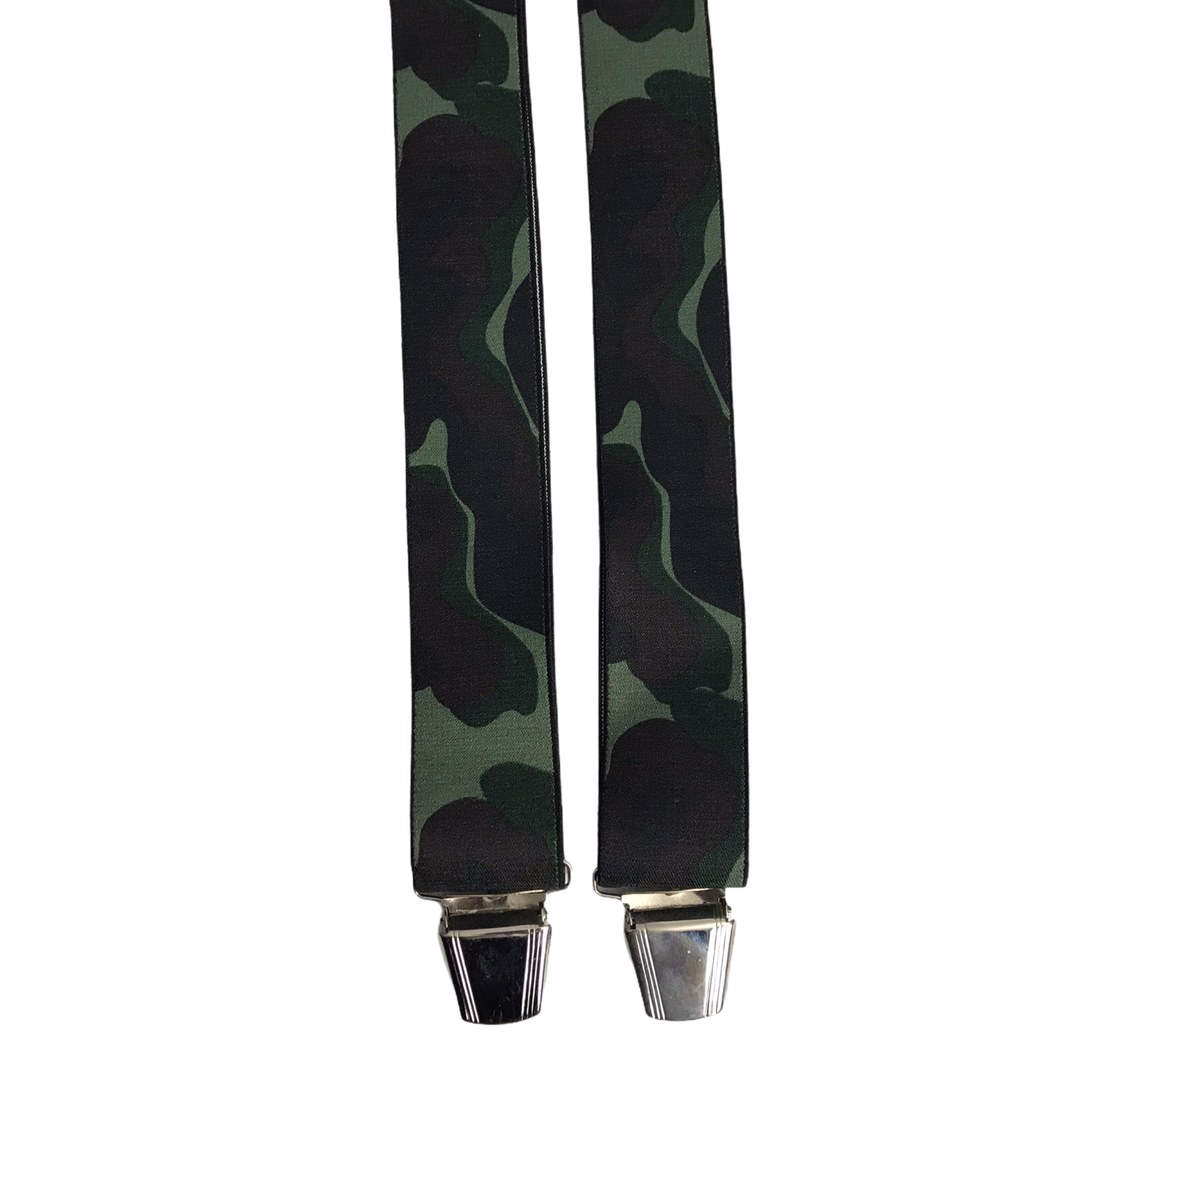 PCT Germany Green Camouflage X-Shape Thick Adjustable 4-Clip Braces Suspenders